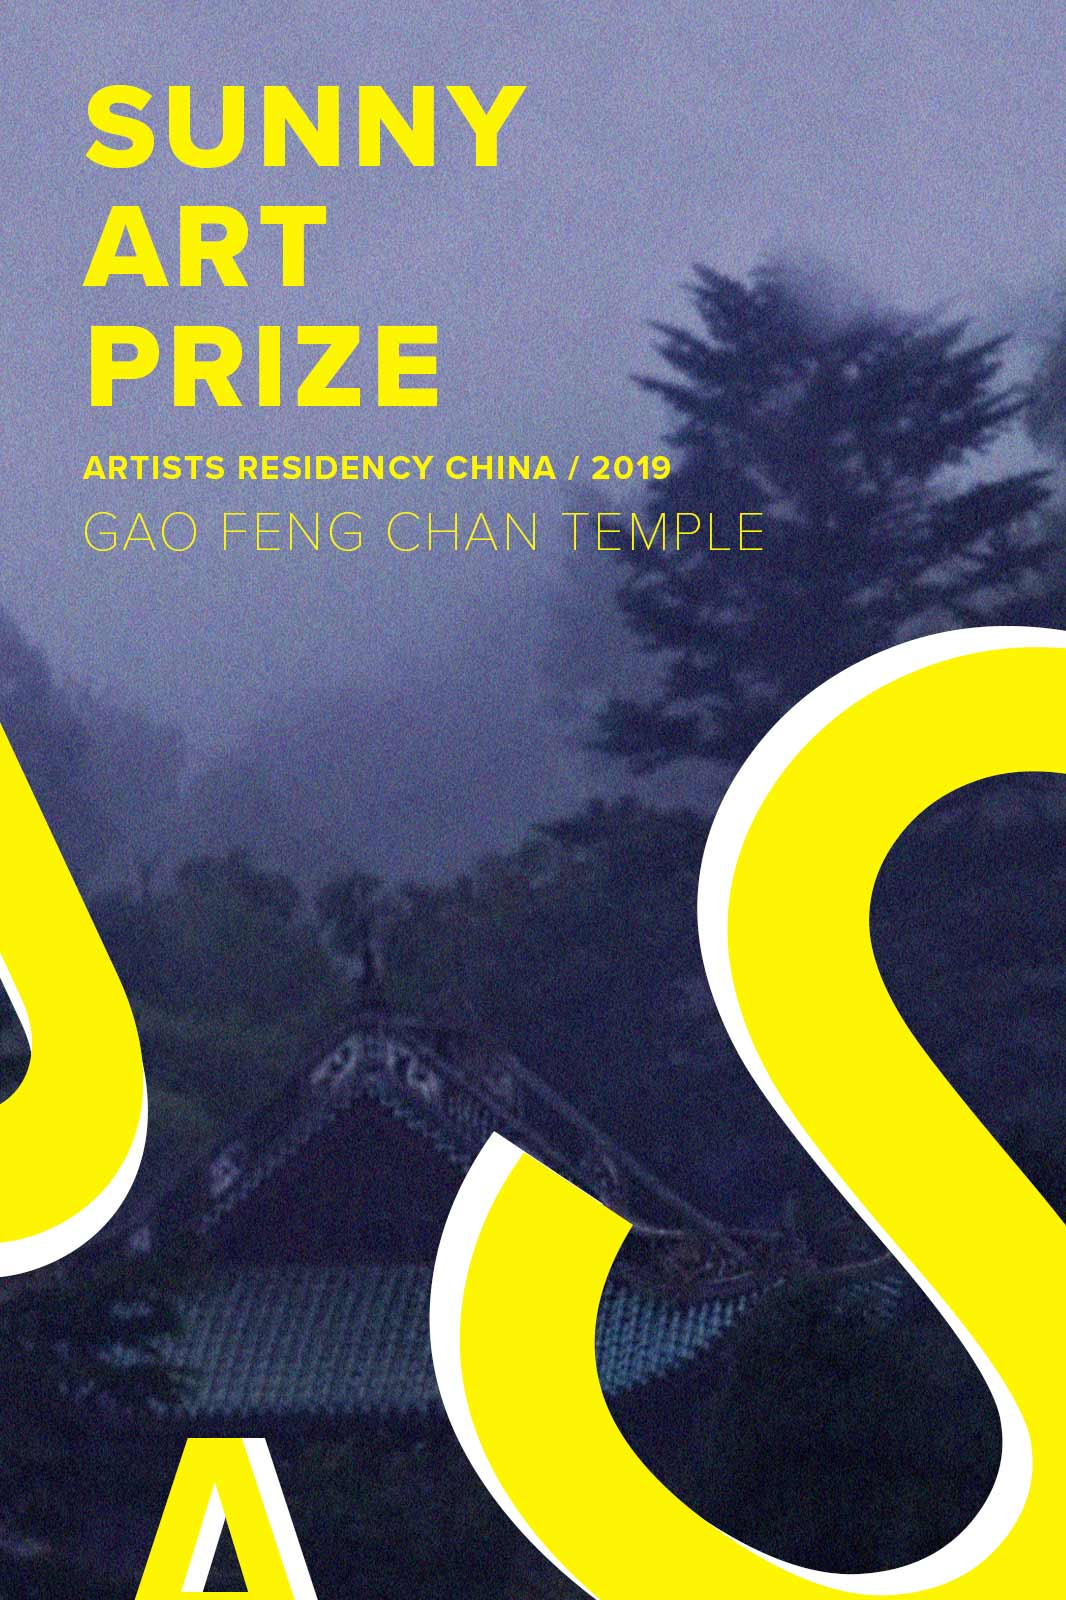 Sunny Art Prize Artists Residency 2019 | Call for Artists